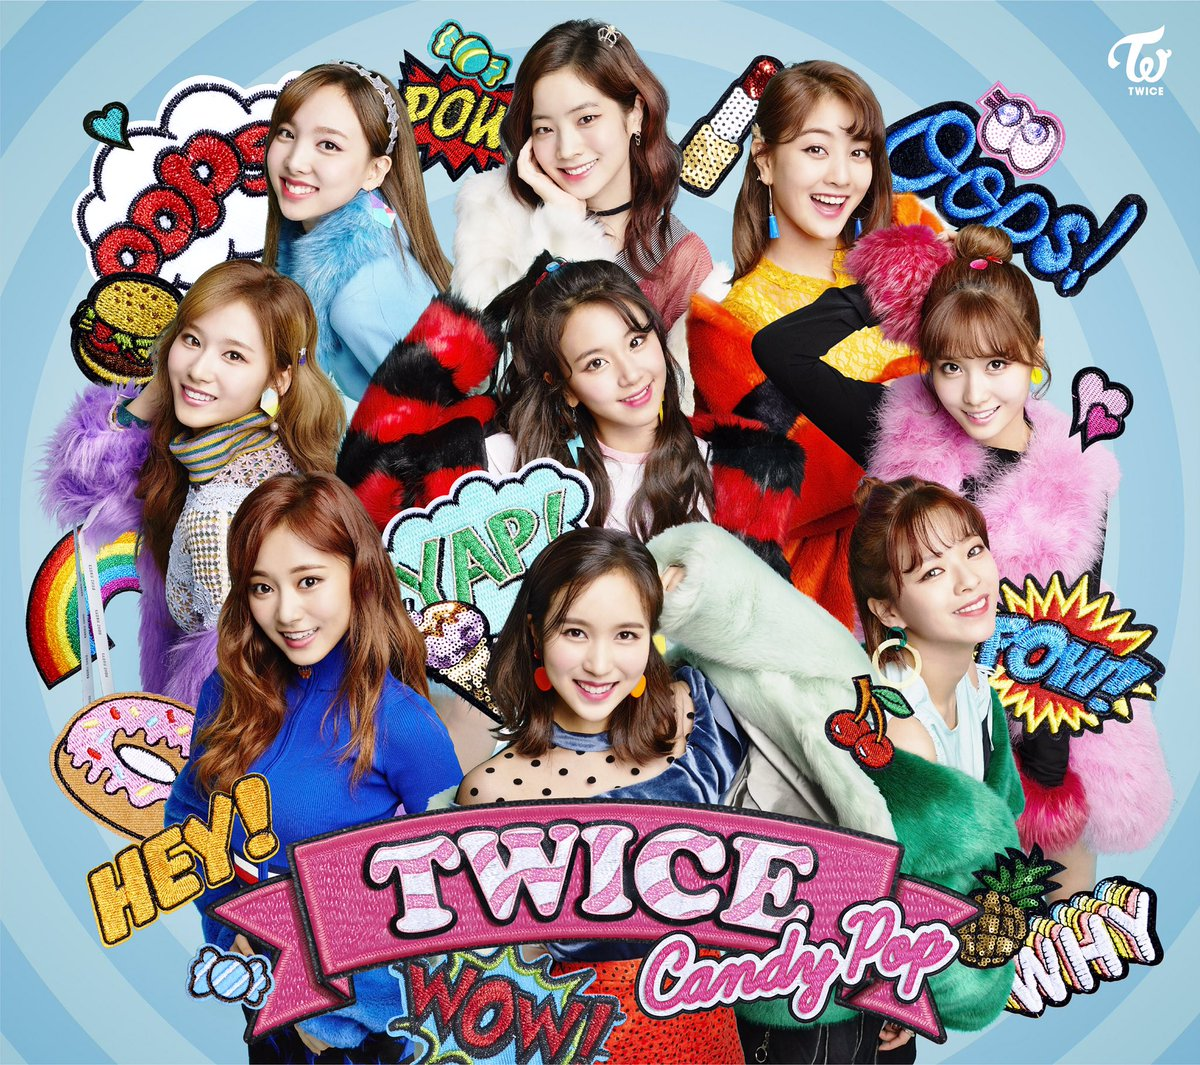 Image result for twice candy pop